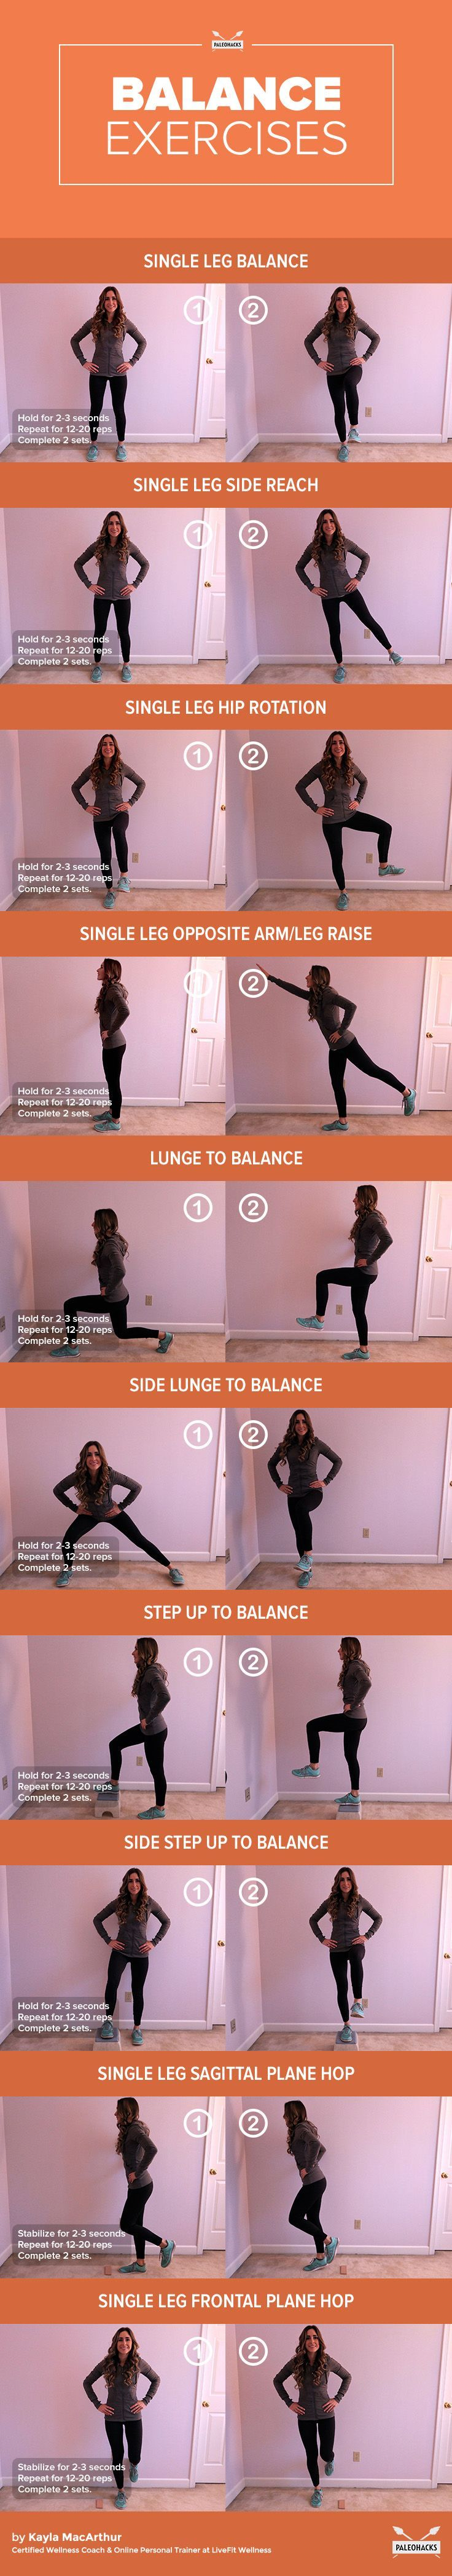 10 Balance Exercises to Help You Master ALL Workouts